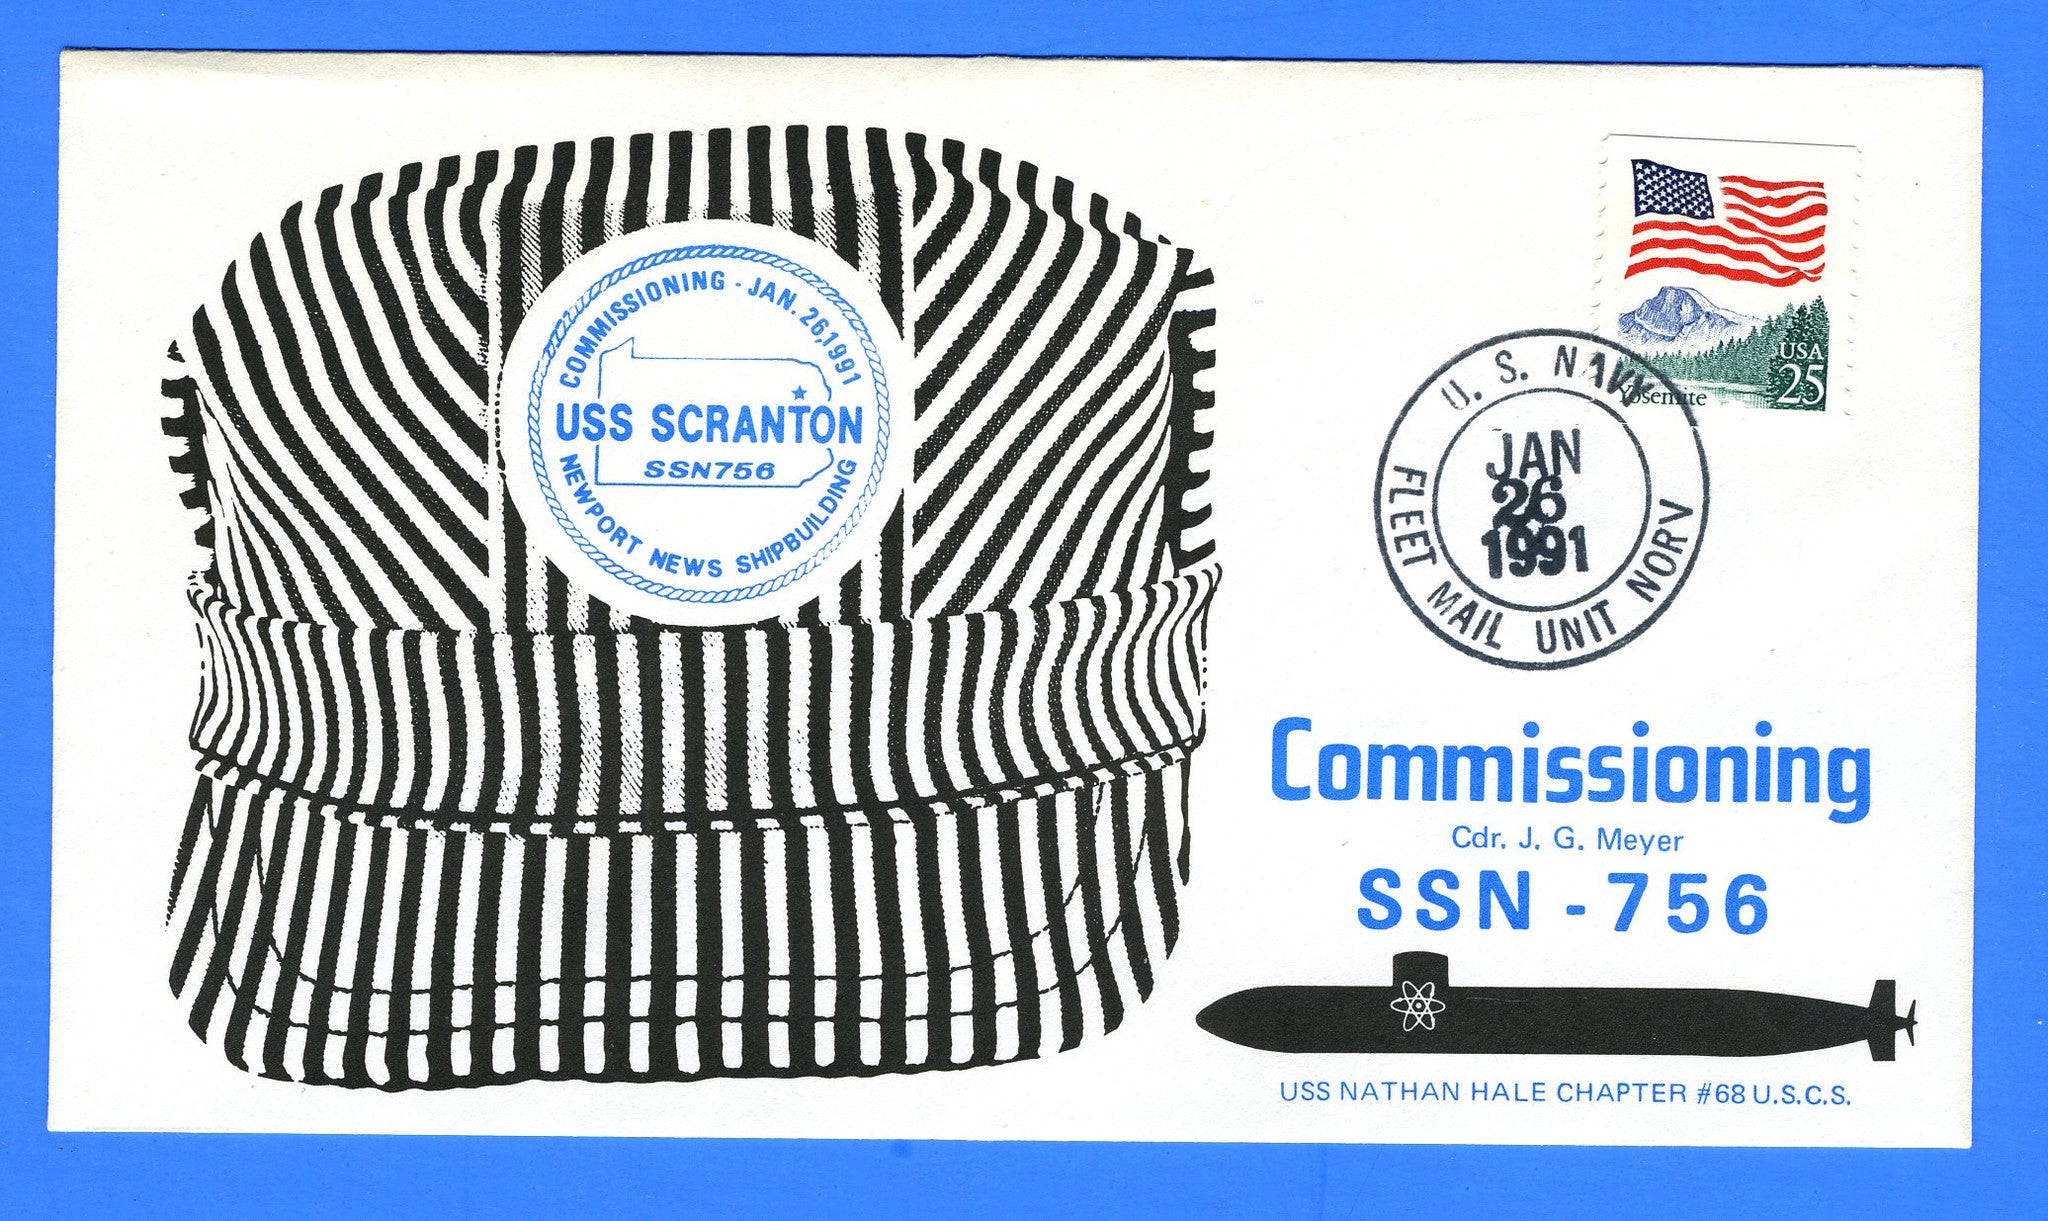 USS Scranton SSN-756 Commissioning January 26, 1991 - Cachet by USS Nathan Hale Chapter No. 68, USCS